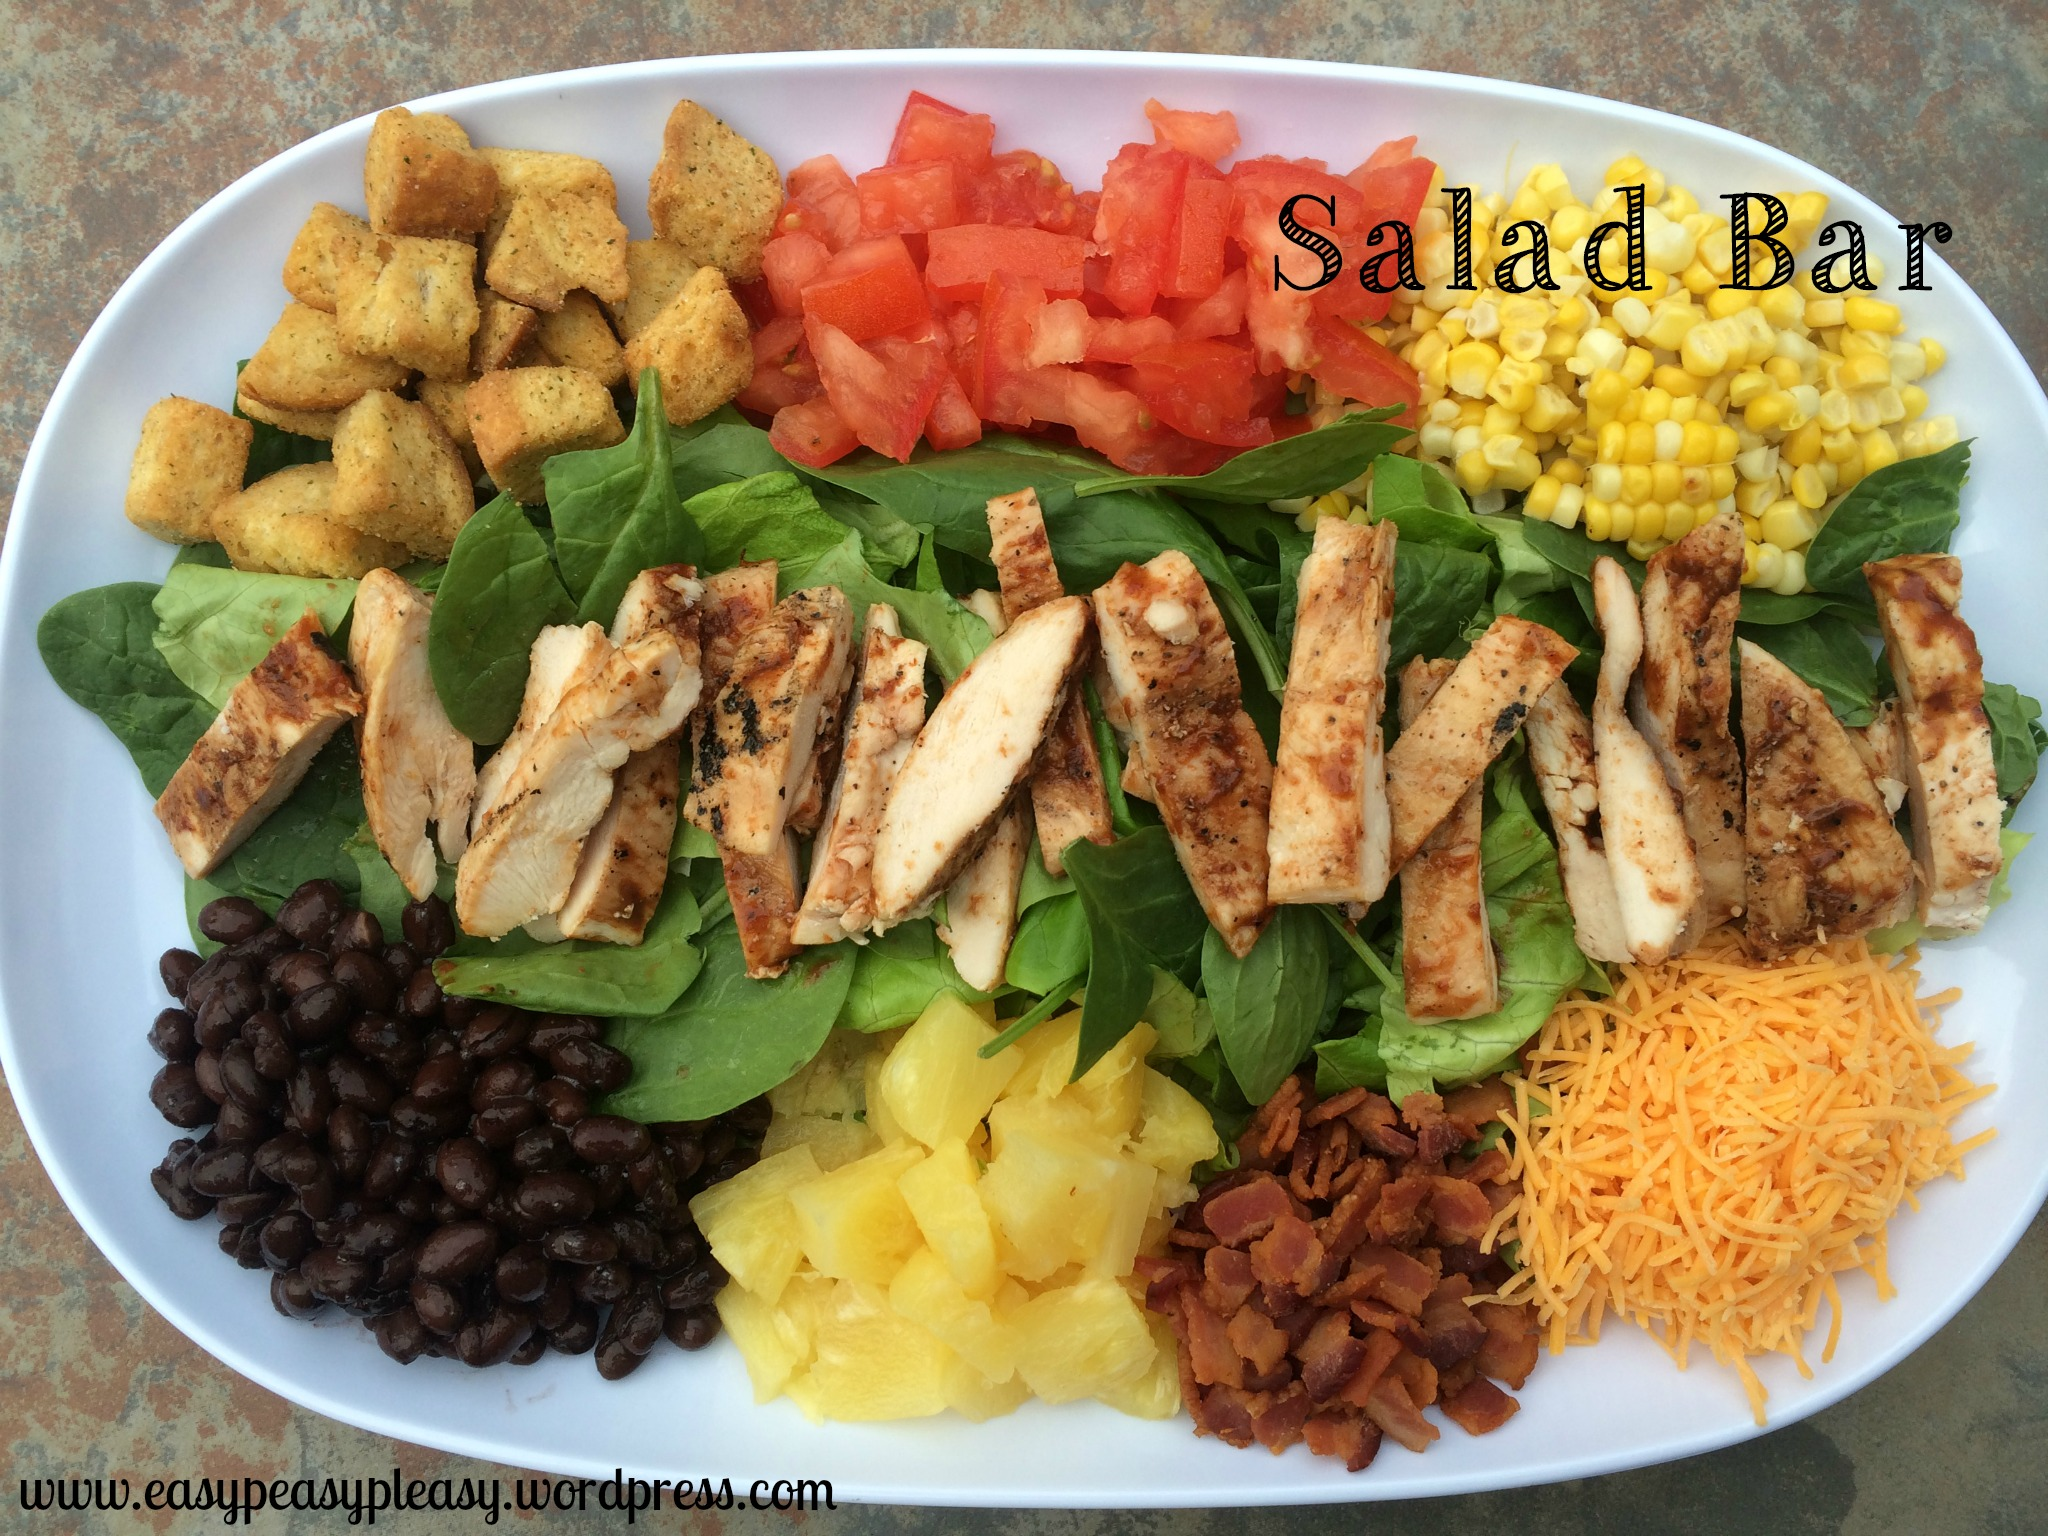 Salad Bar on a platter at https://easypeasypleasy.com